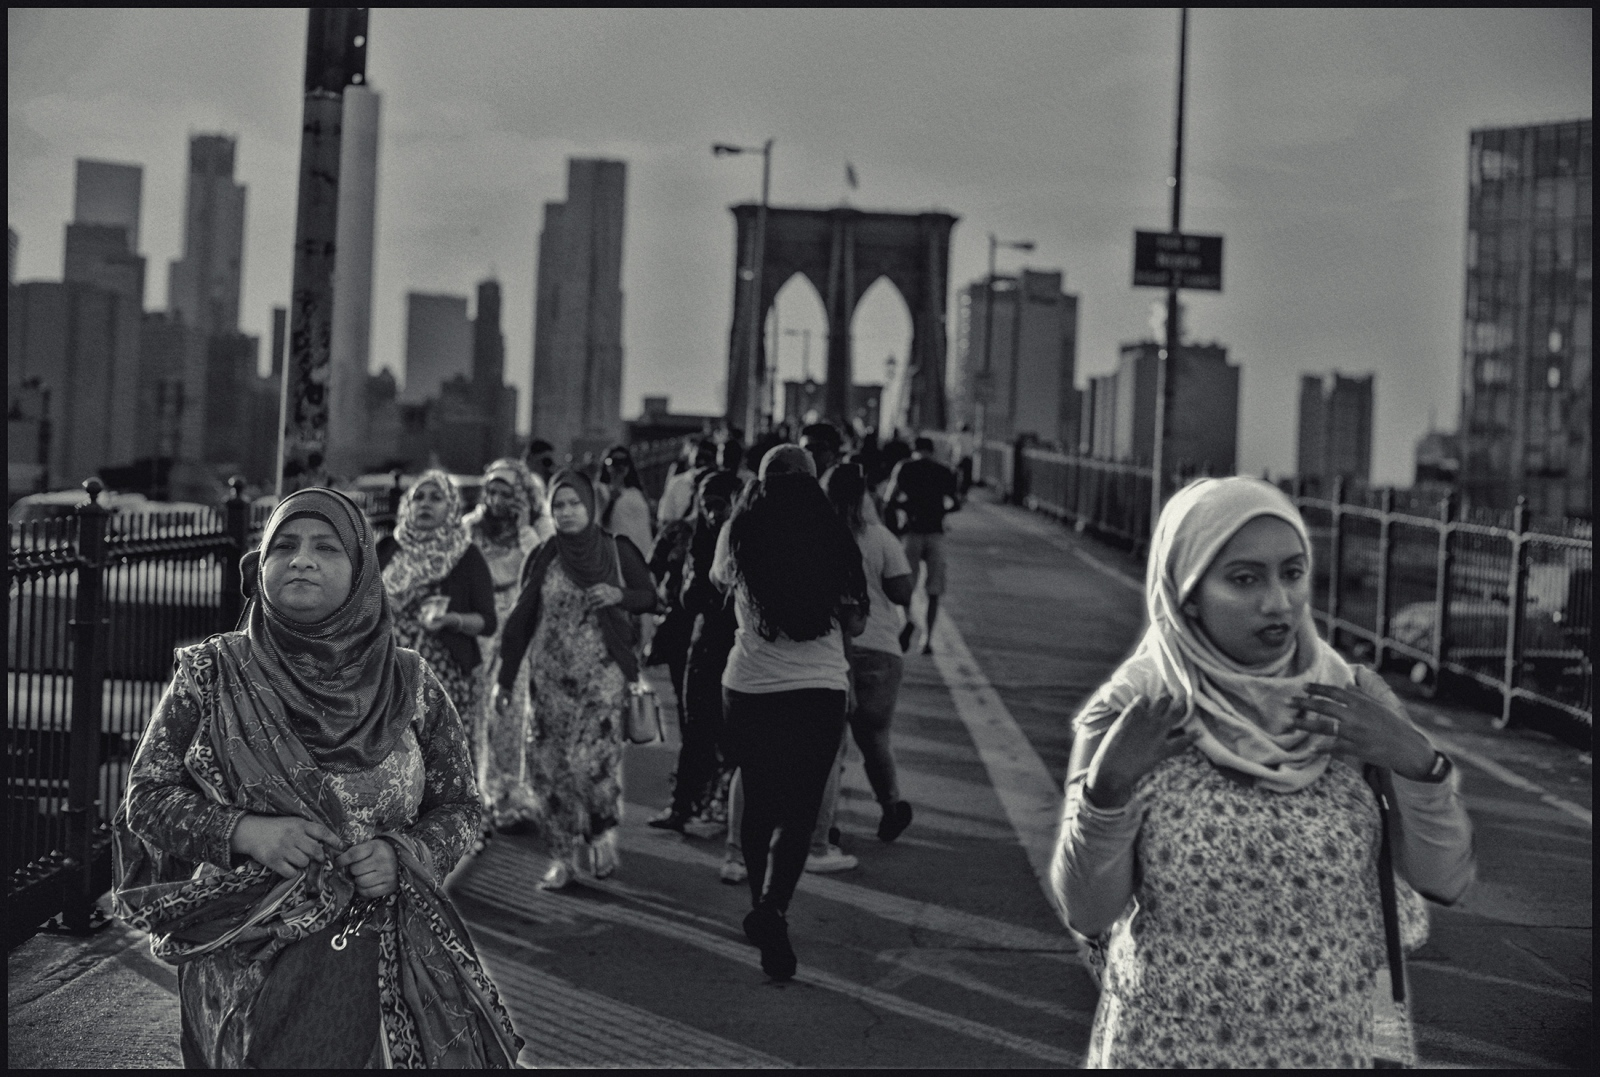 Extended immigrant family visiting the Brooklyn Bridge. Brooklyn NYC. 2017.